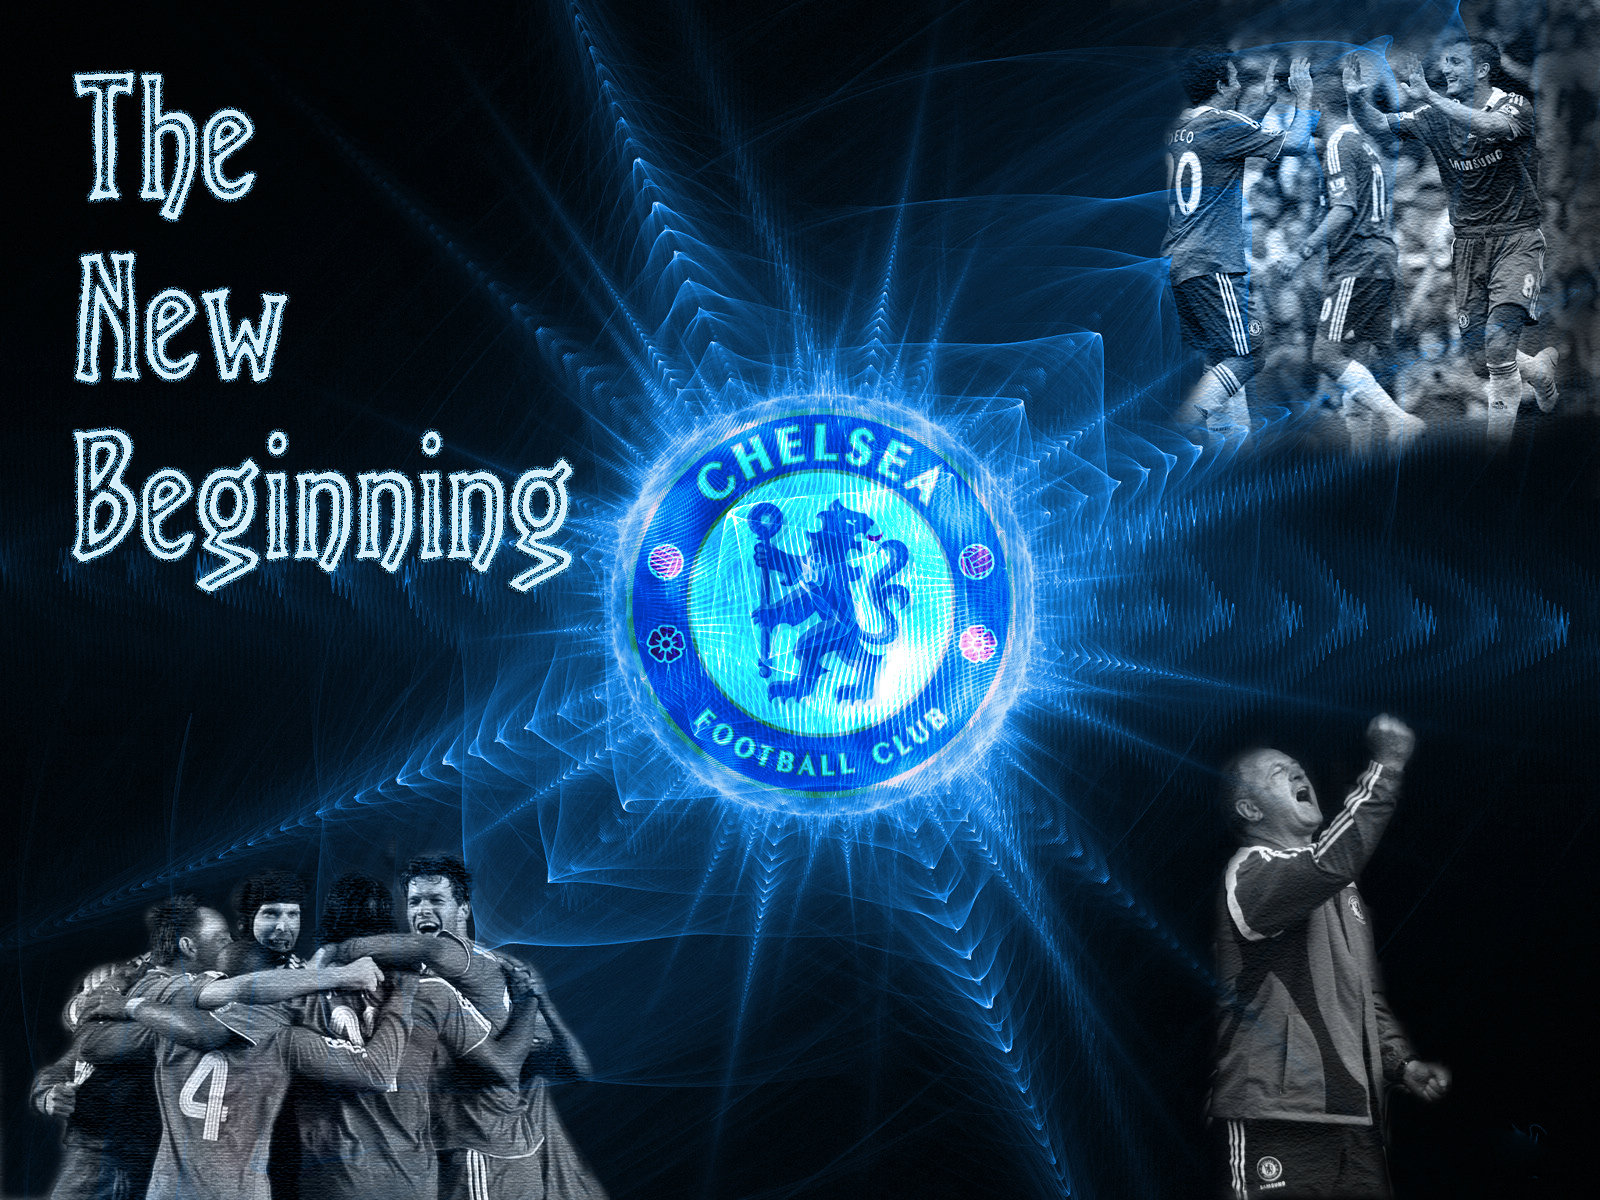 Chelsea Fc Images Chelsea The New Beginning Hd Wallpaper And